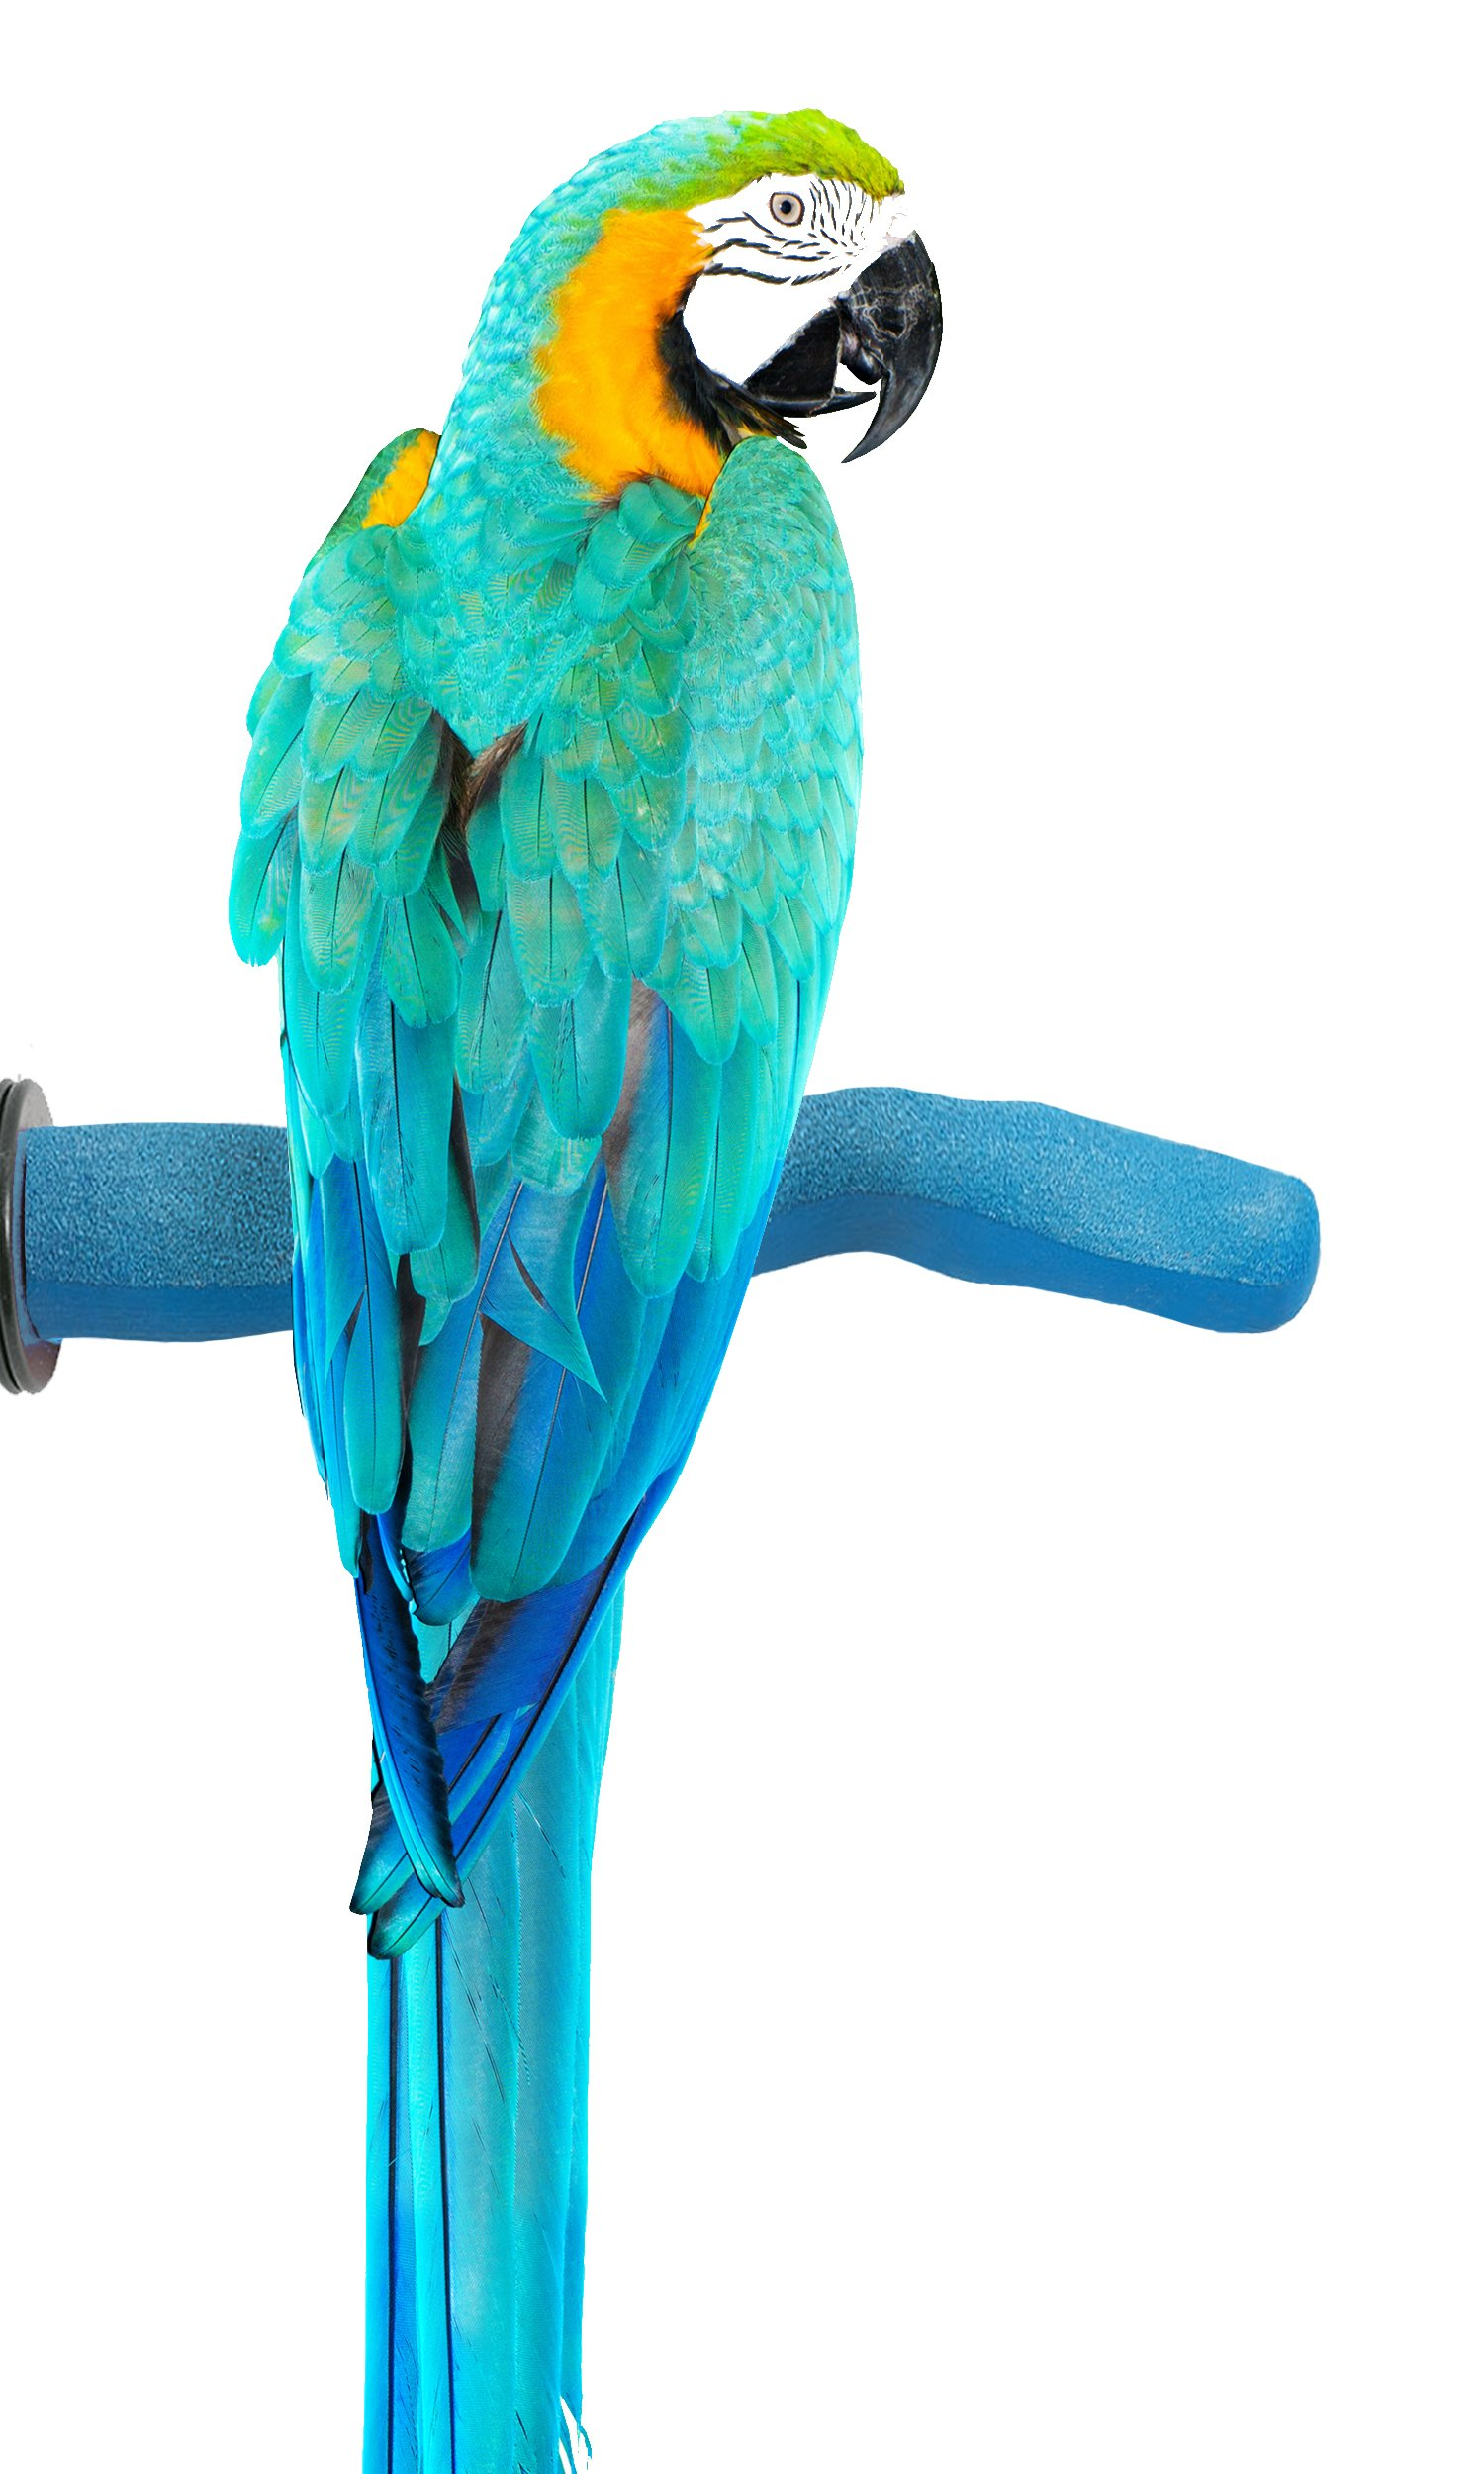 Sweet Feet and Beak Safety Pumice Perch for Birds Features Real Pumice to Trim Nails and Beak and Promote Healthy Feet - Safe and Non-Toxic, for Bird Cages - [ Large/Blue ] by Sweet Feet and Beak